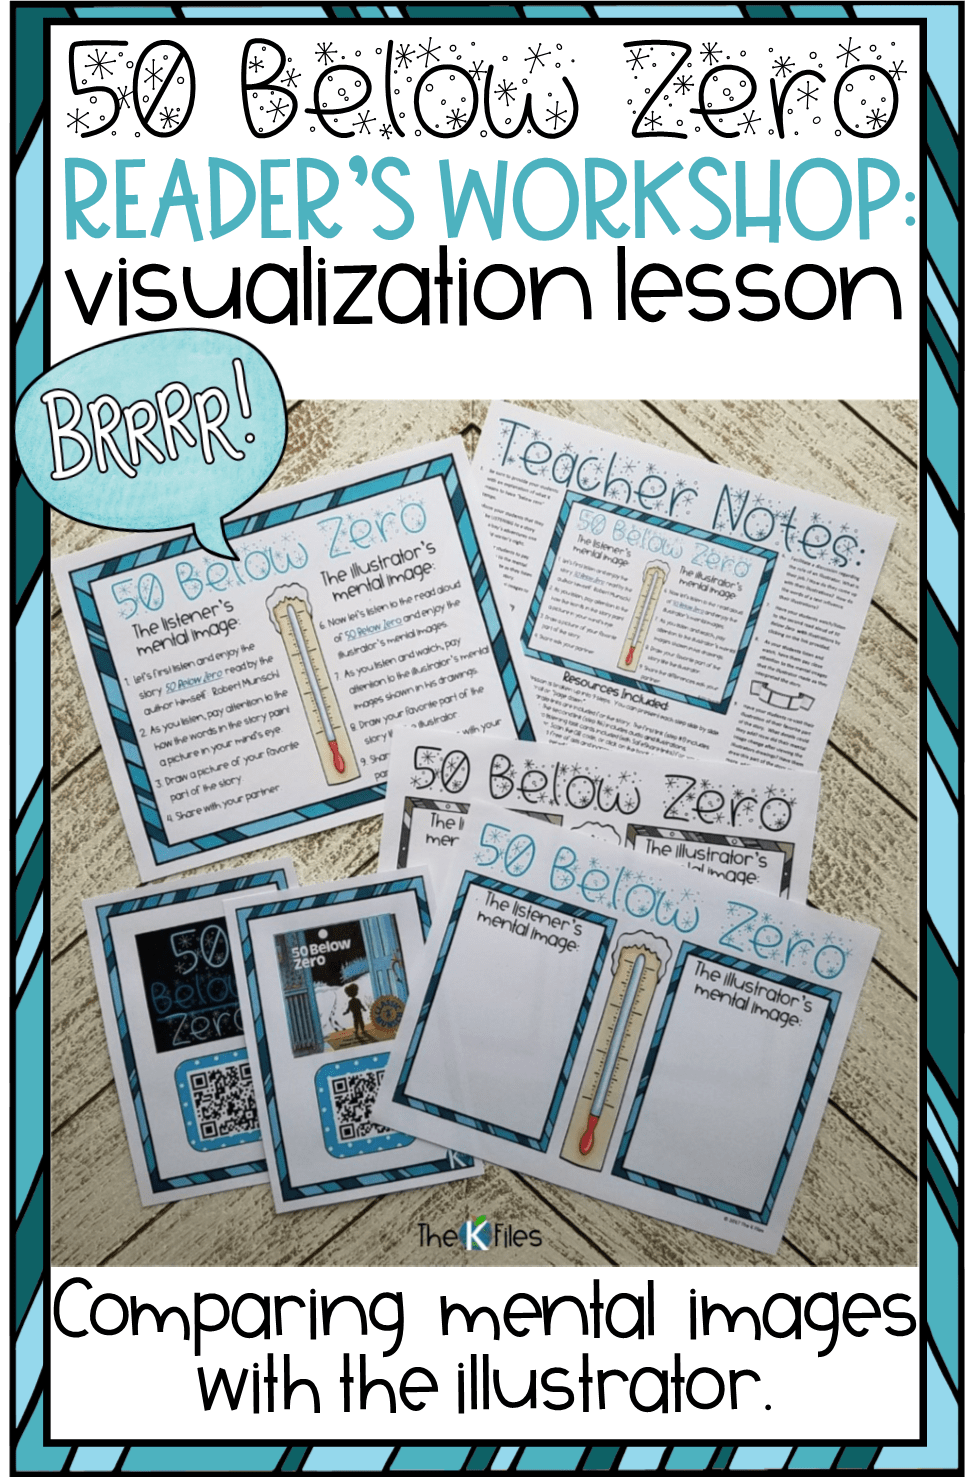 This is a powerful visualization & reading strategy lesson for Reader's Workshop that will encourage your students to create mental images while listening and reading a story. Not to mention that it is a highly engaging read aloud! Visualizing REading Strategy Activity and Worksheet